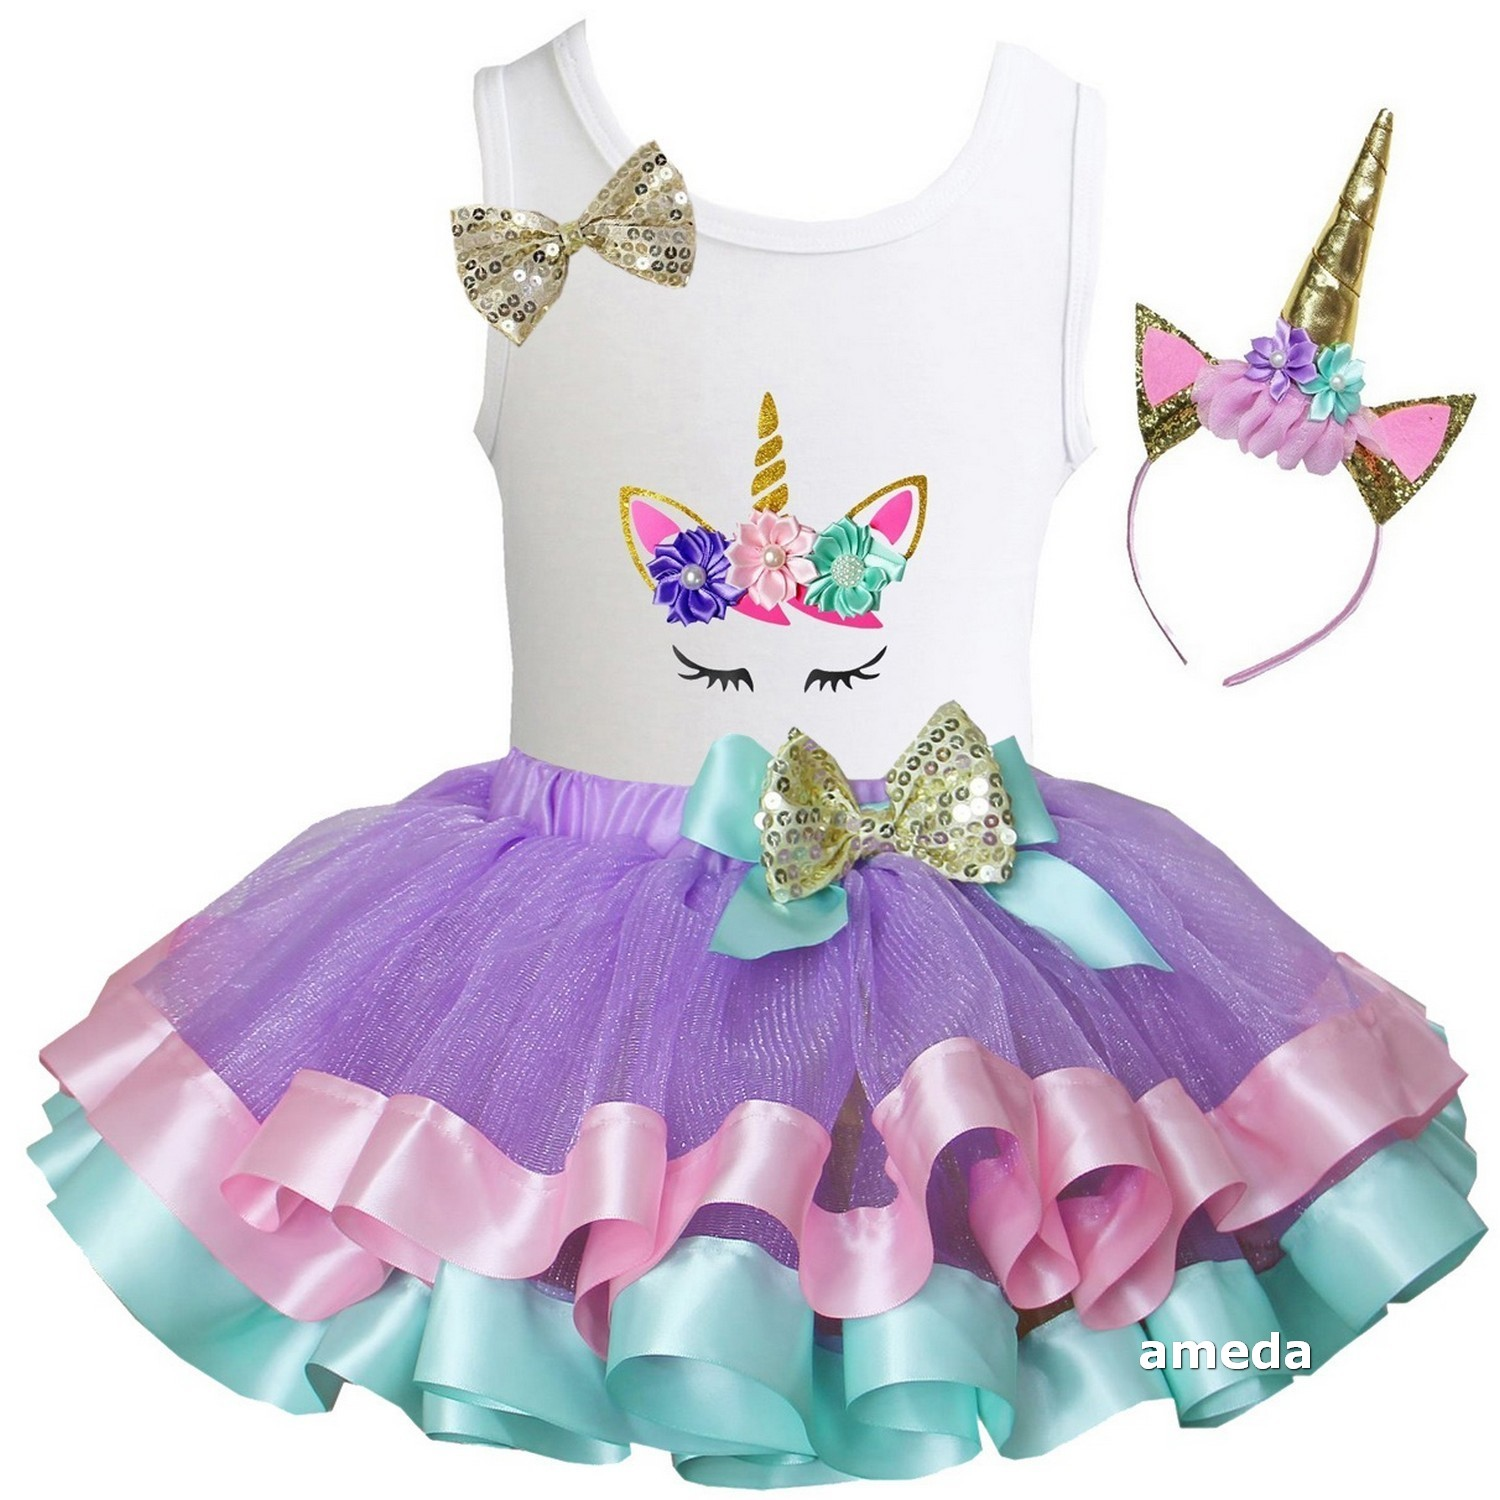 cf6b24692 Details about Girls Gold Pastel Satin Trimmed Tutu & 1st - 10th Birthday  Unicorn Dress Outfit